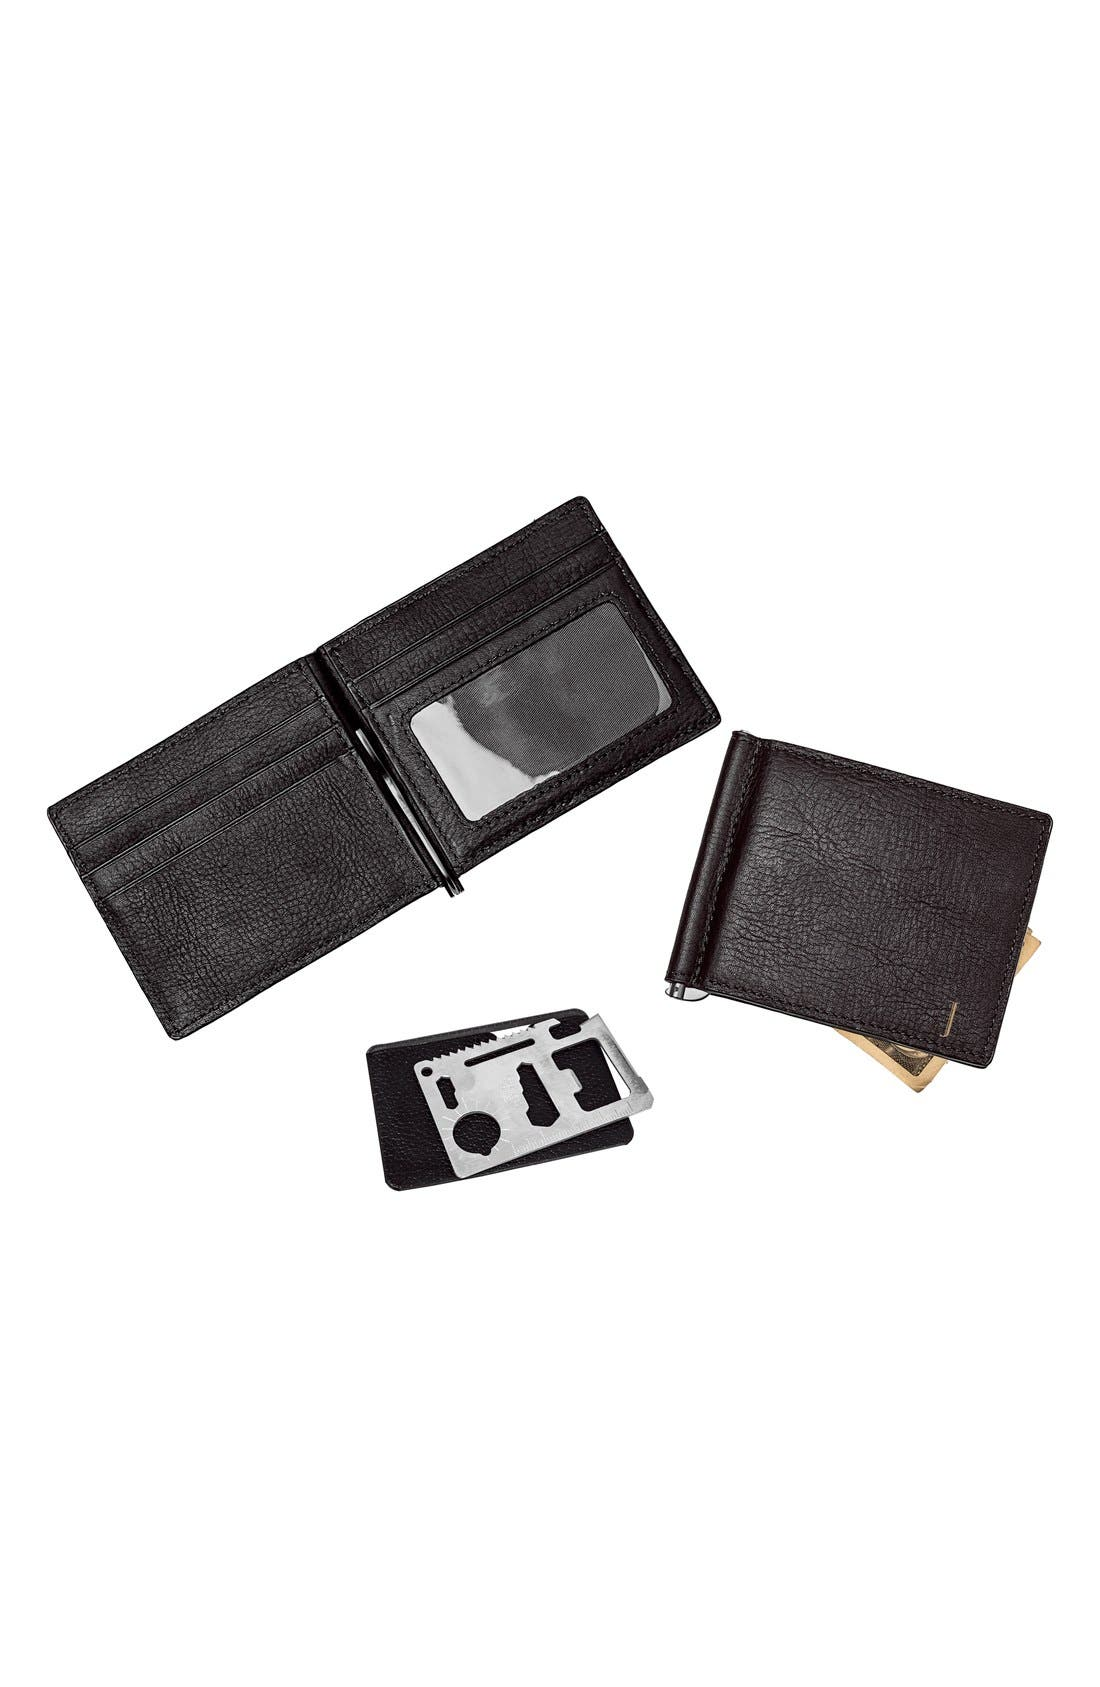 Monogram Leather Wallet & Money Clip,                             Alternate thumbnail 2, color,                             BLACK - BLANK